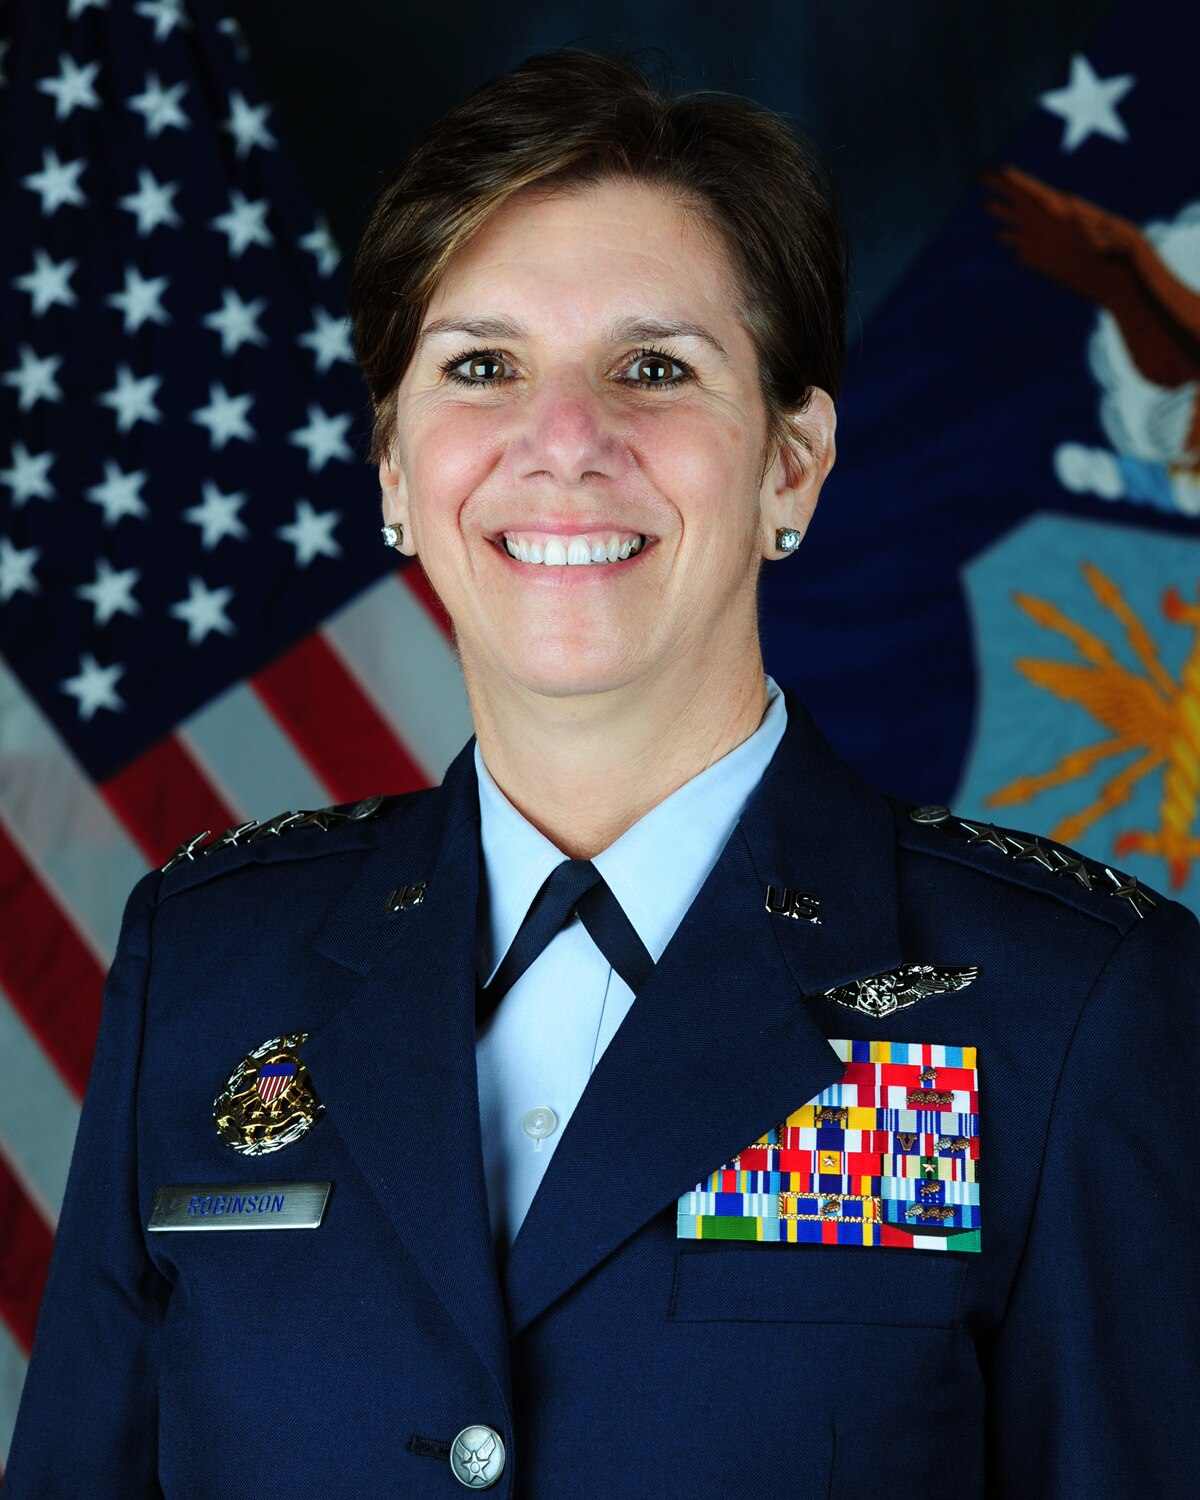 Gen. Lori Robinson entered the Air Force in 1982 through the ROTC program at the University of New Hampshire. (Photo: DoD)